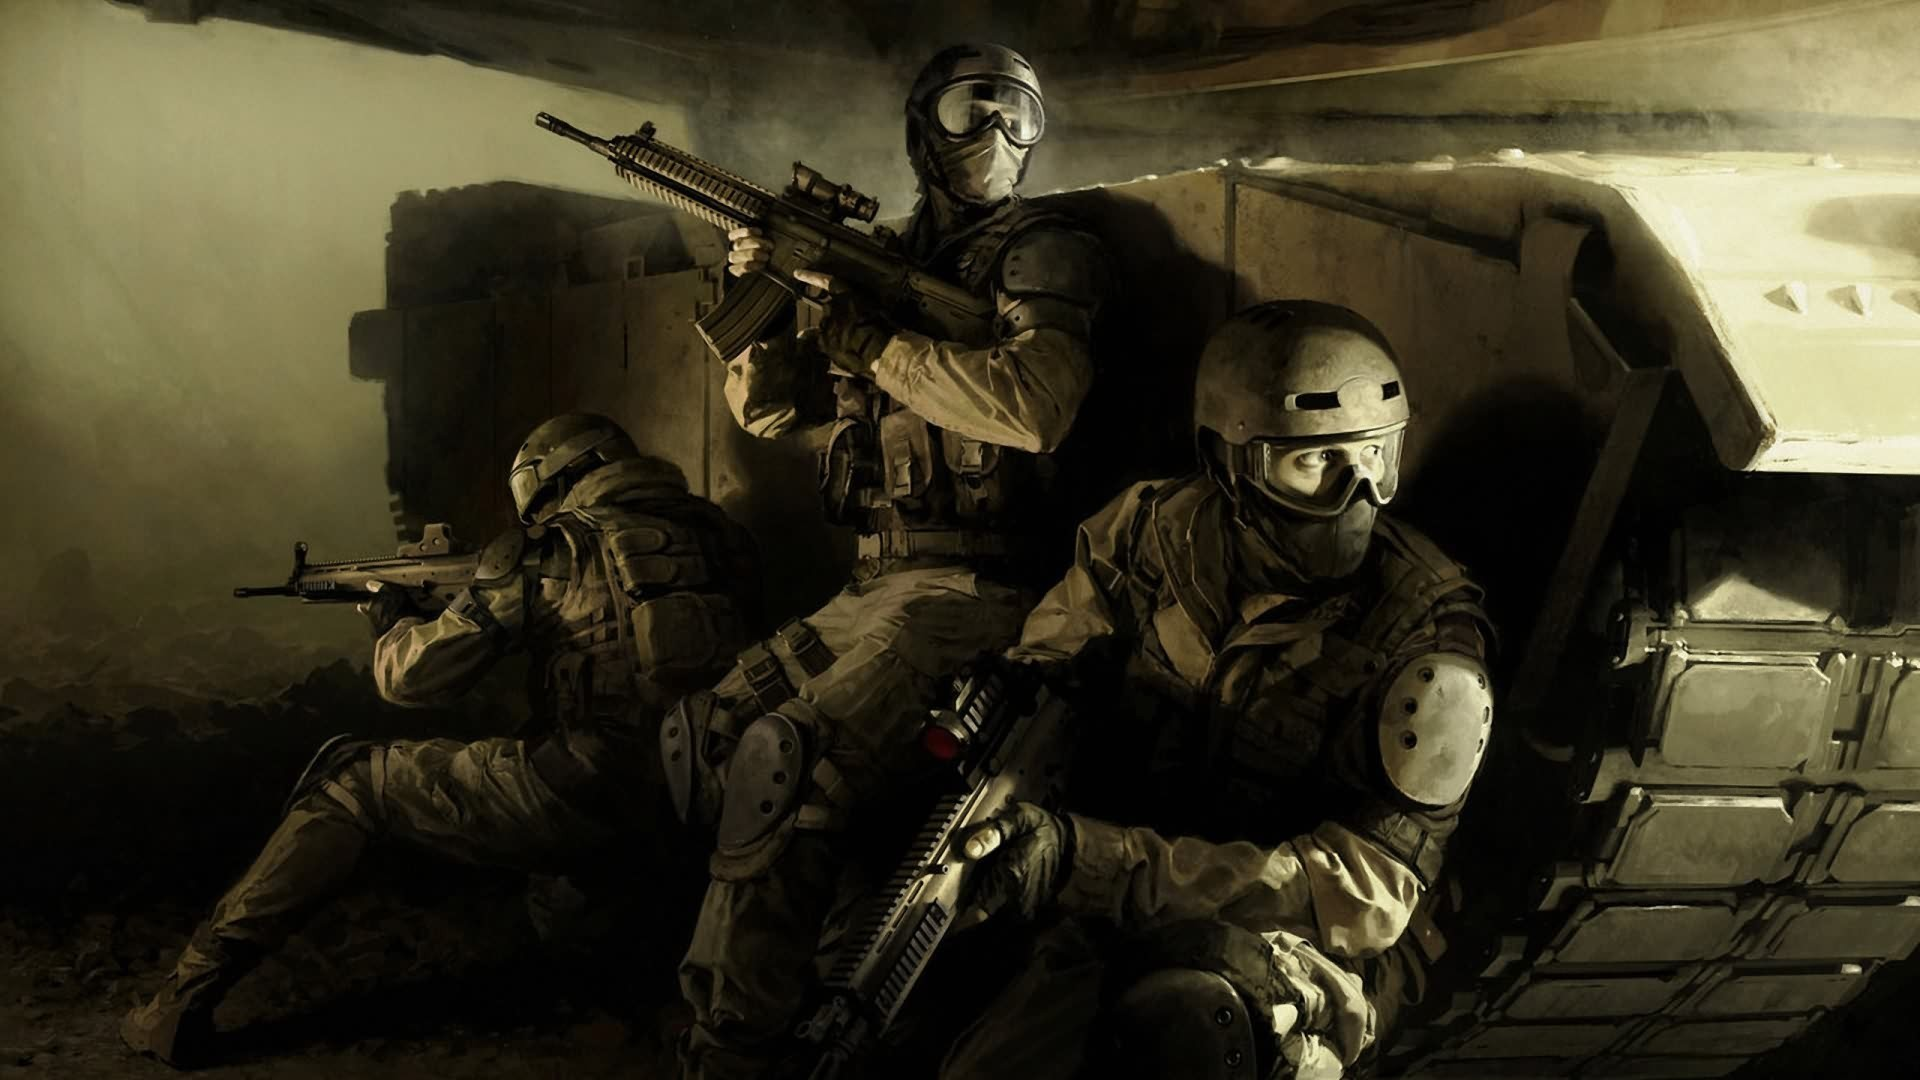 1920x1080 124 best __SpeciaL Operations unit images on Pinterest | Military ...  specialforces ...